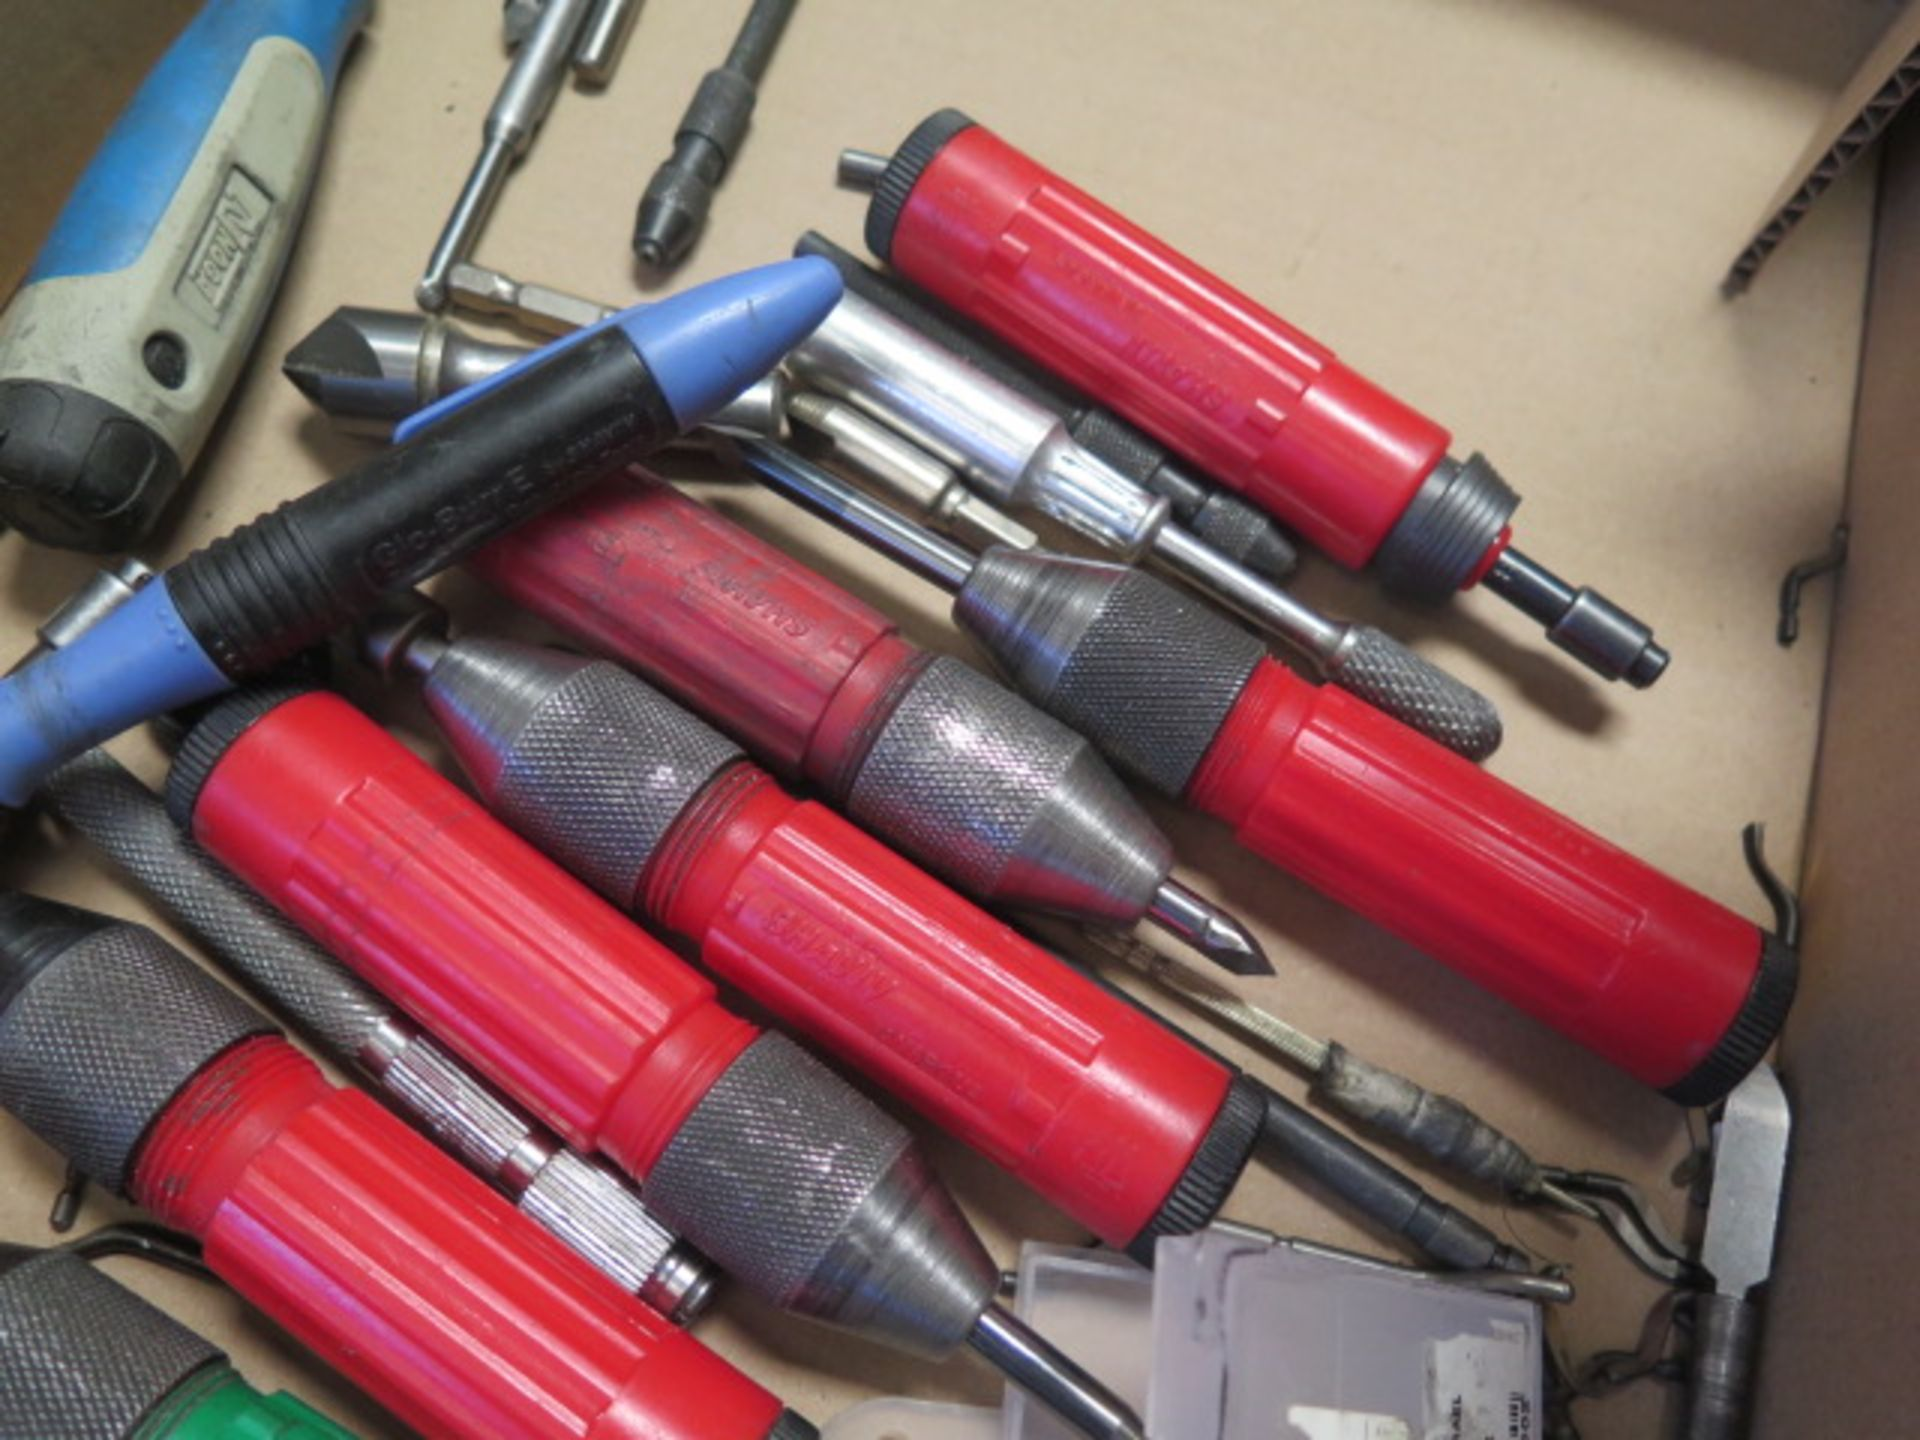 Deburring Tools (SOLD AS-IS - NO WARRANTY) - Image 4 of 5